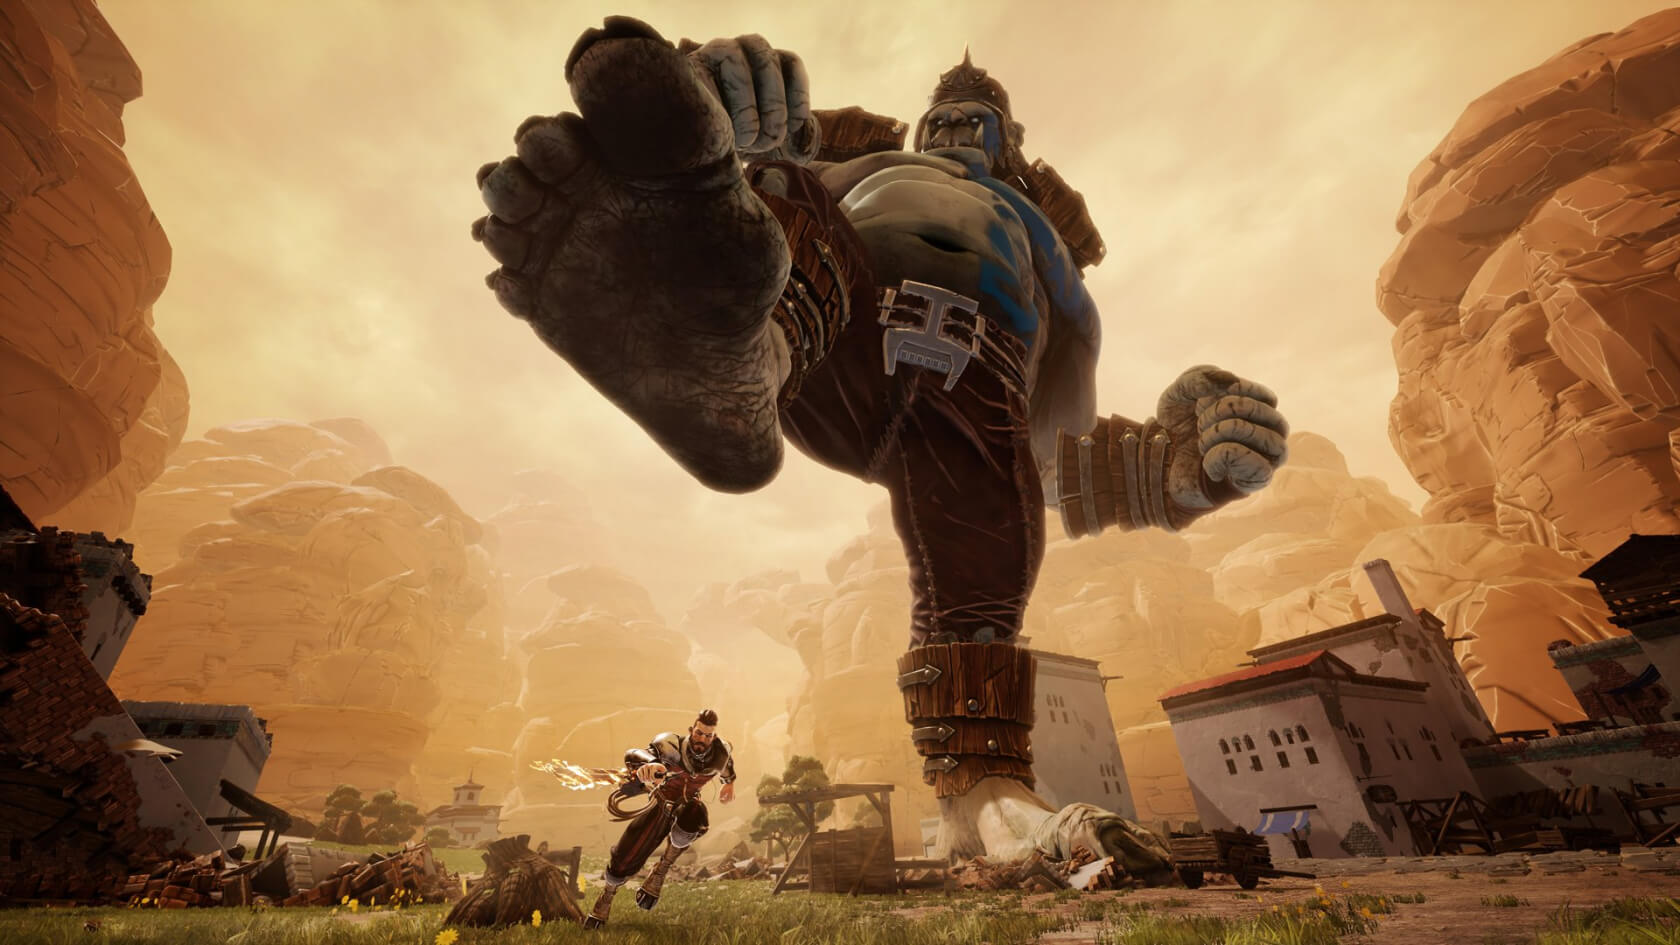 Extinction Release Date Confirmed, Climbing Giant Ogres This April